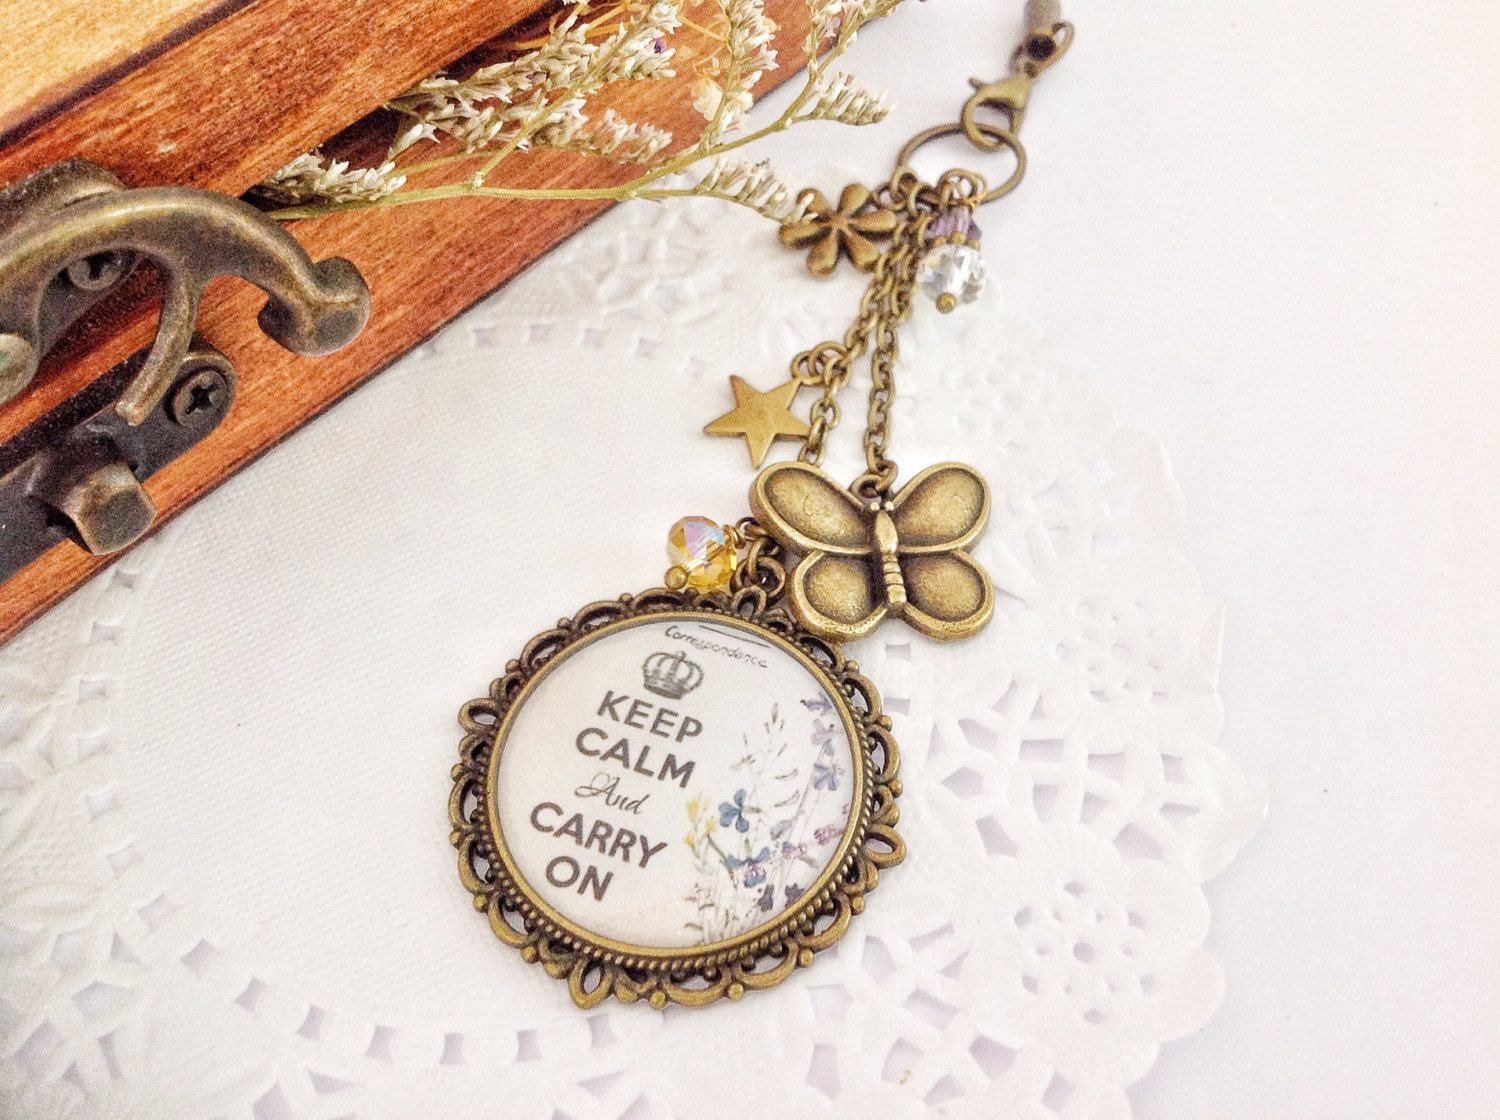 Planner Charm - Keep Calm and Carry On, Bag Dangles, Filofax Charm, Phone Charm by PrettySang on Etsy